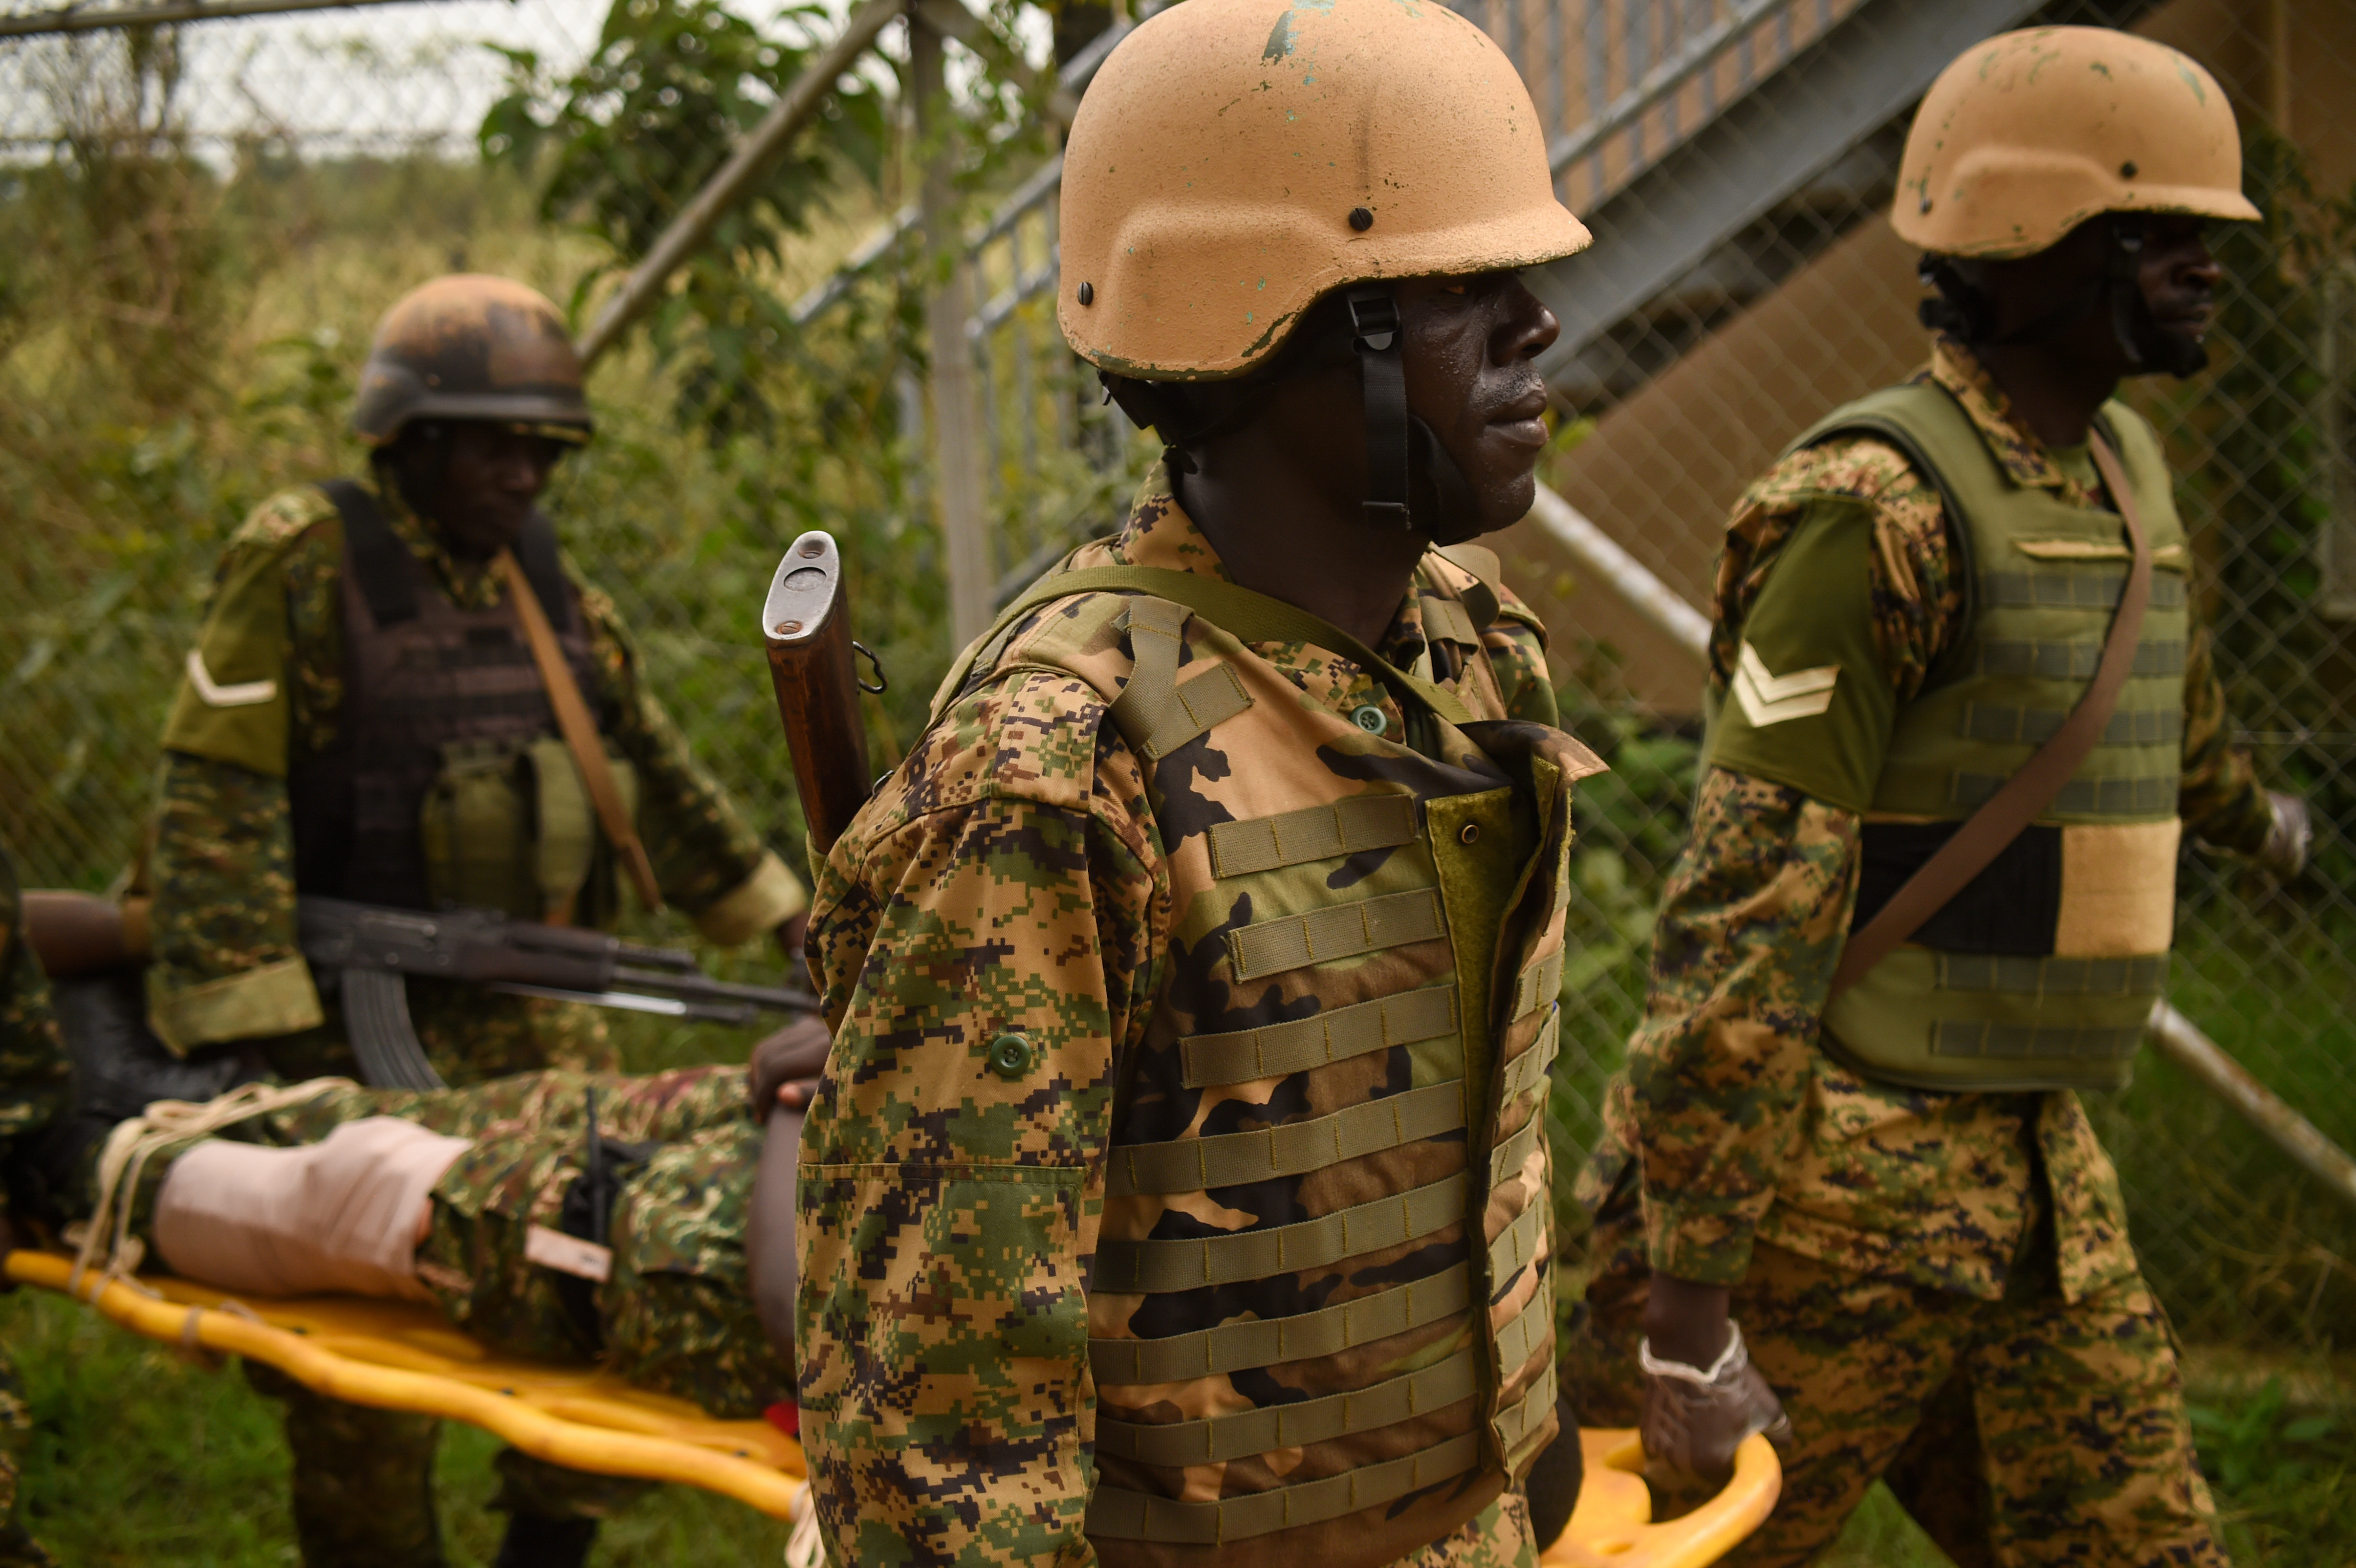 Uganda People's Defense Force (UPDF) soldiers with Ugandan Battle Group 22, transport a simulated casualty to an extraction point during a medical exercise at Camp Singo, Uganda, March 3, 2017. Up to 25 percent of deaths on the battlefield are preventable. Administering swift medical attention on the battlefield and in transport greatly improves the survival rate of casualties. (U.S. Air National Guard photo by Staff Sgt. Penny Snoozy)